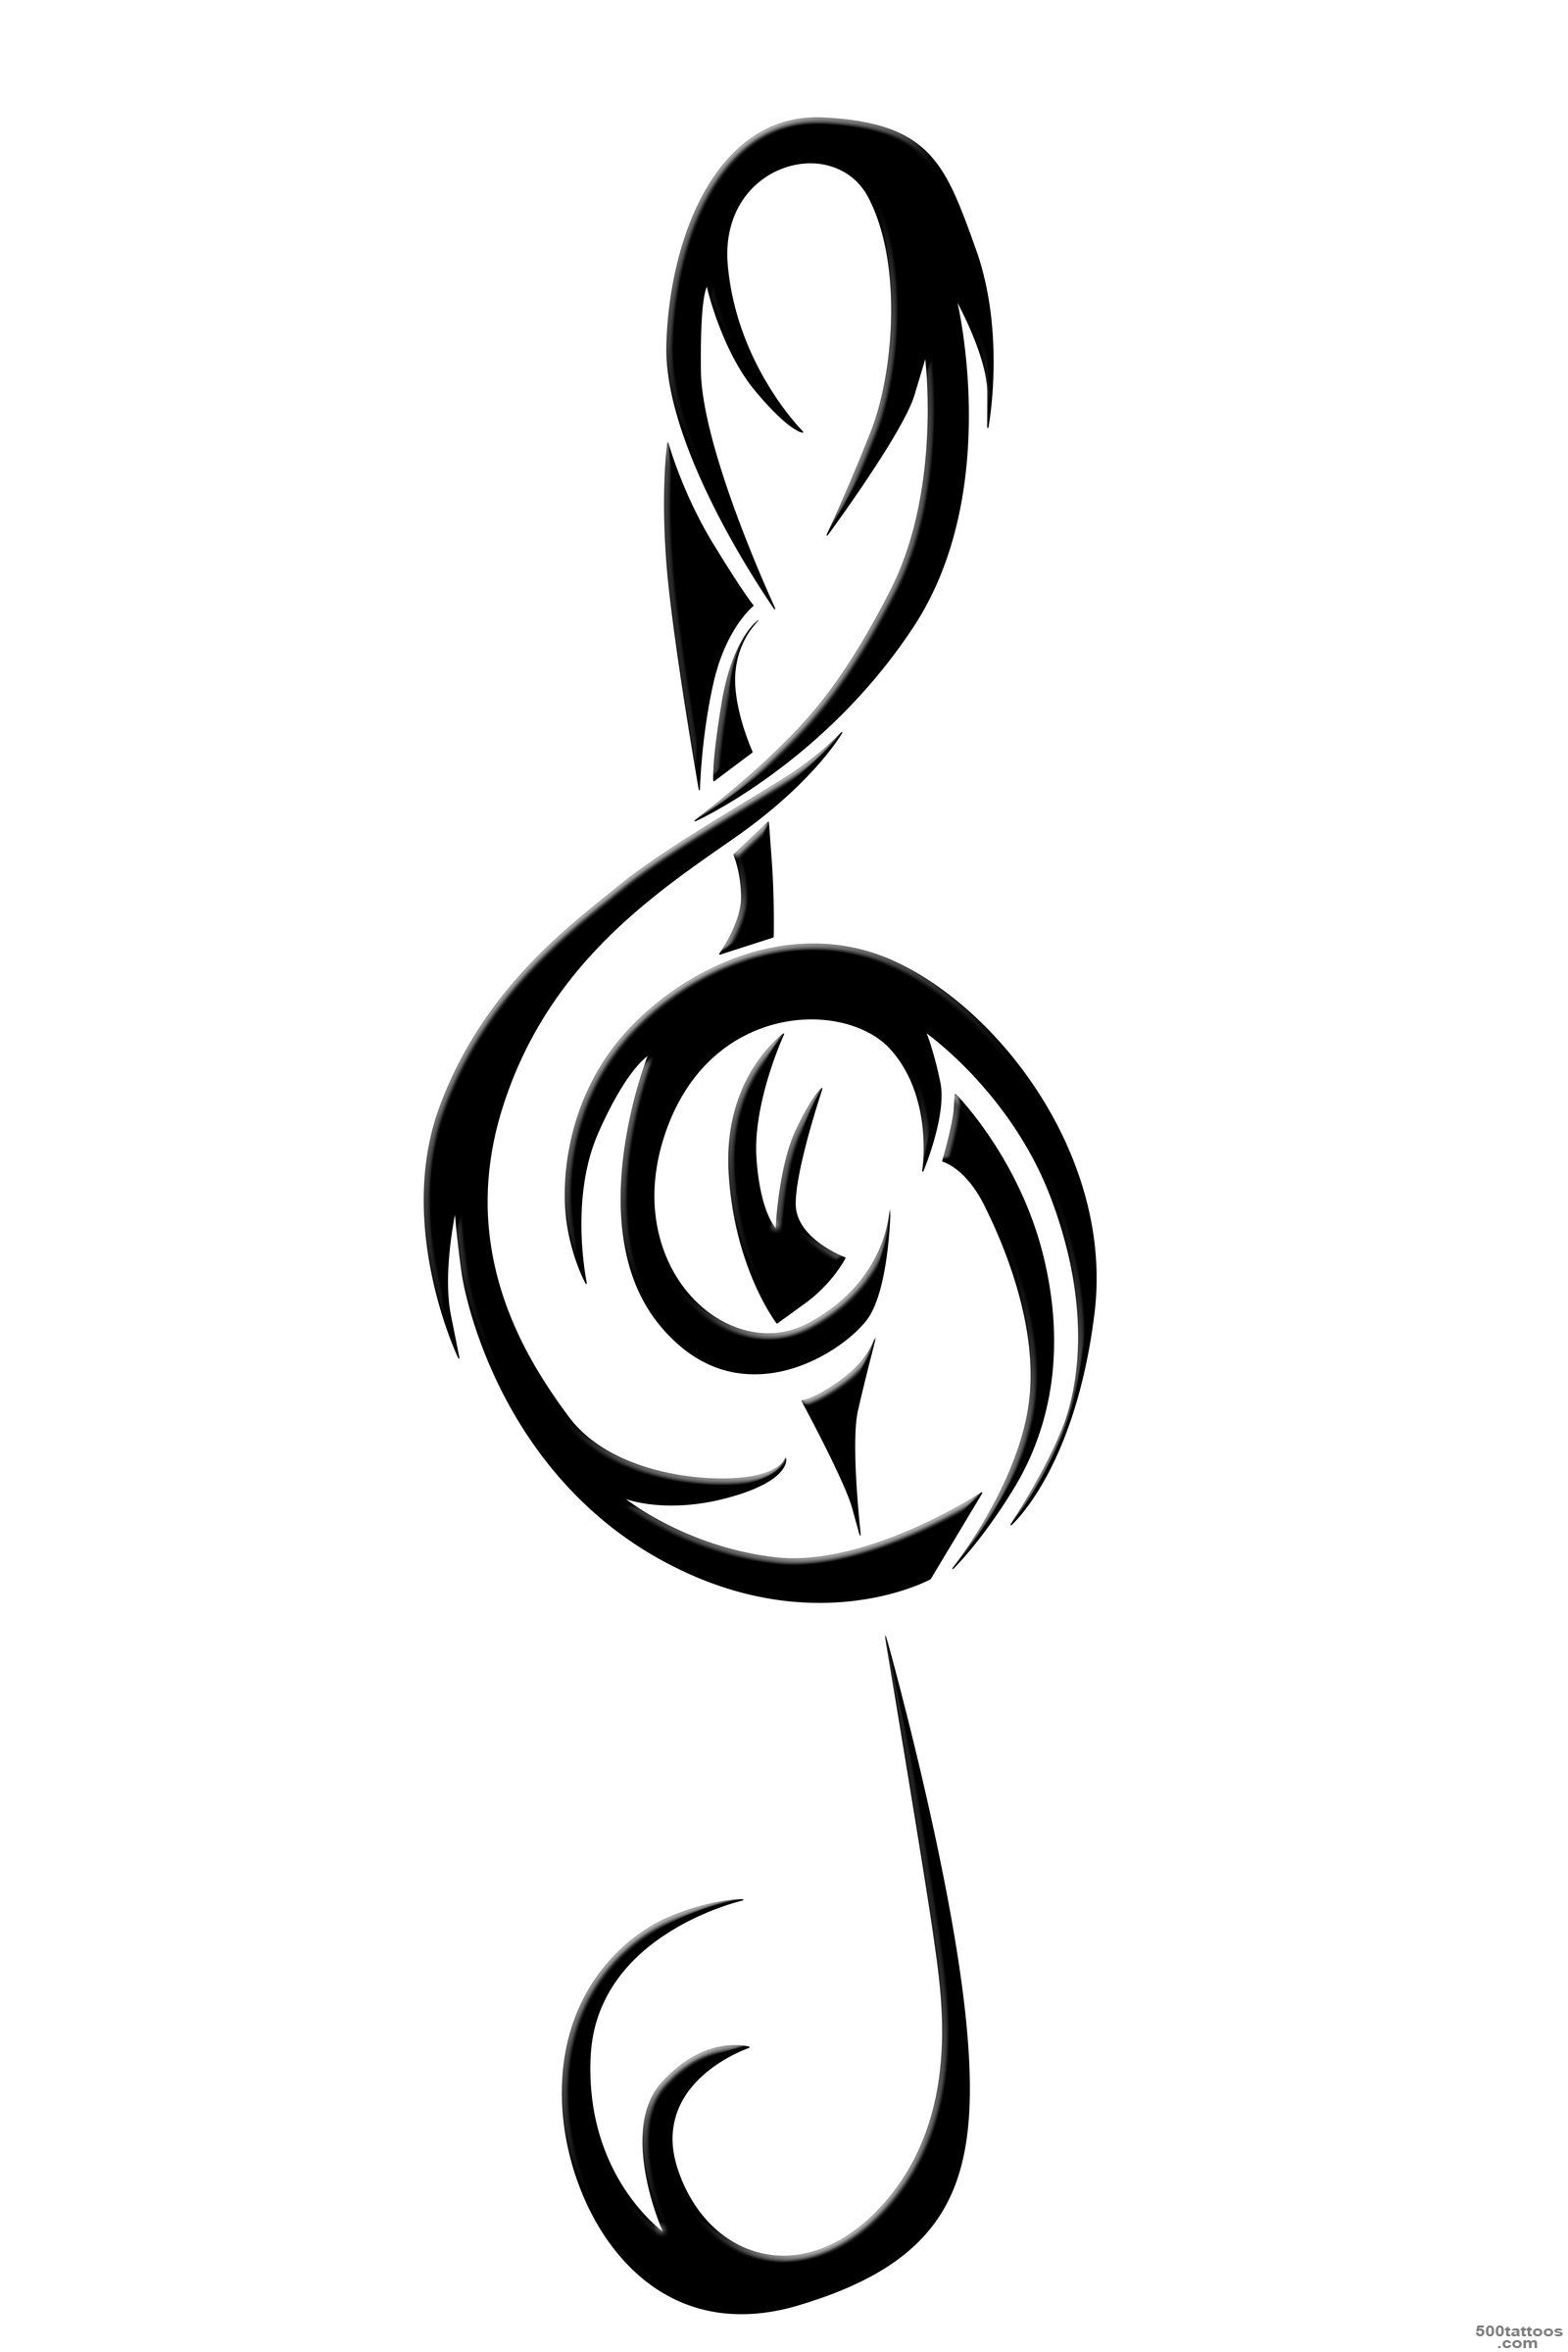 DeviantArt More Like Dragon Treble Clef Tattoo by sezratron_39